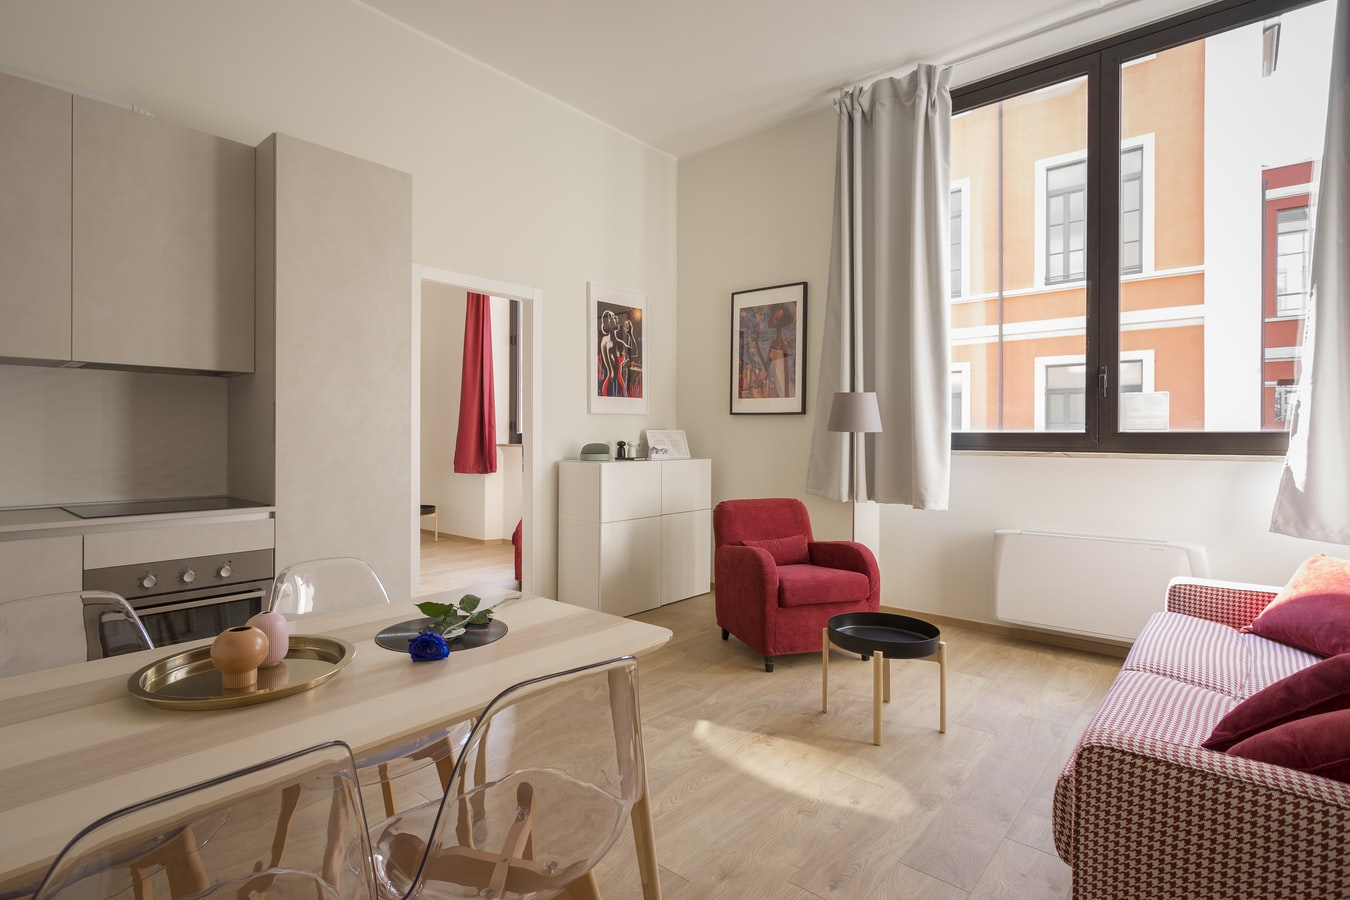 apartment space with red decor